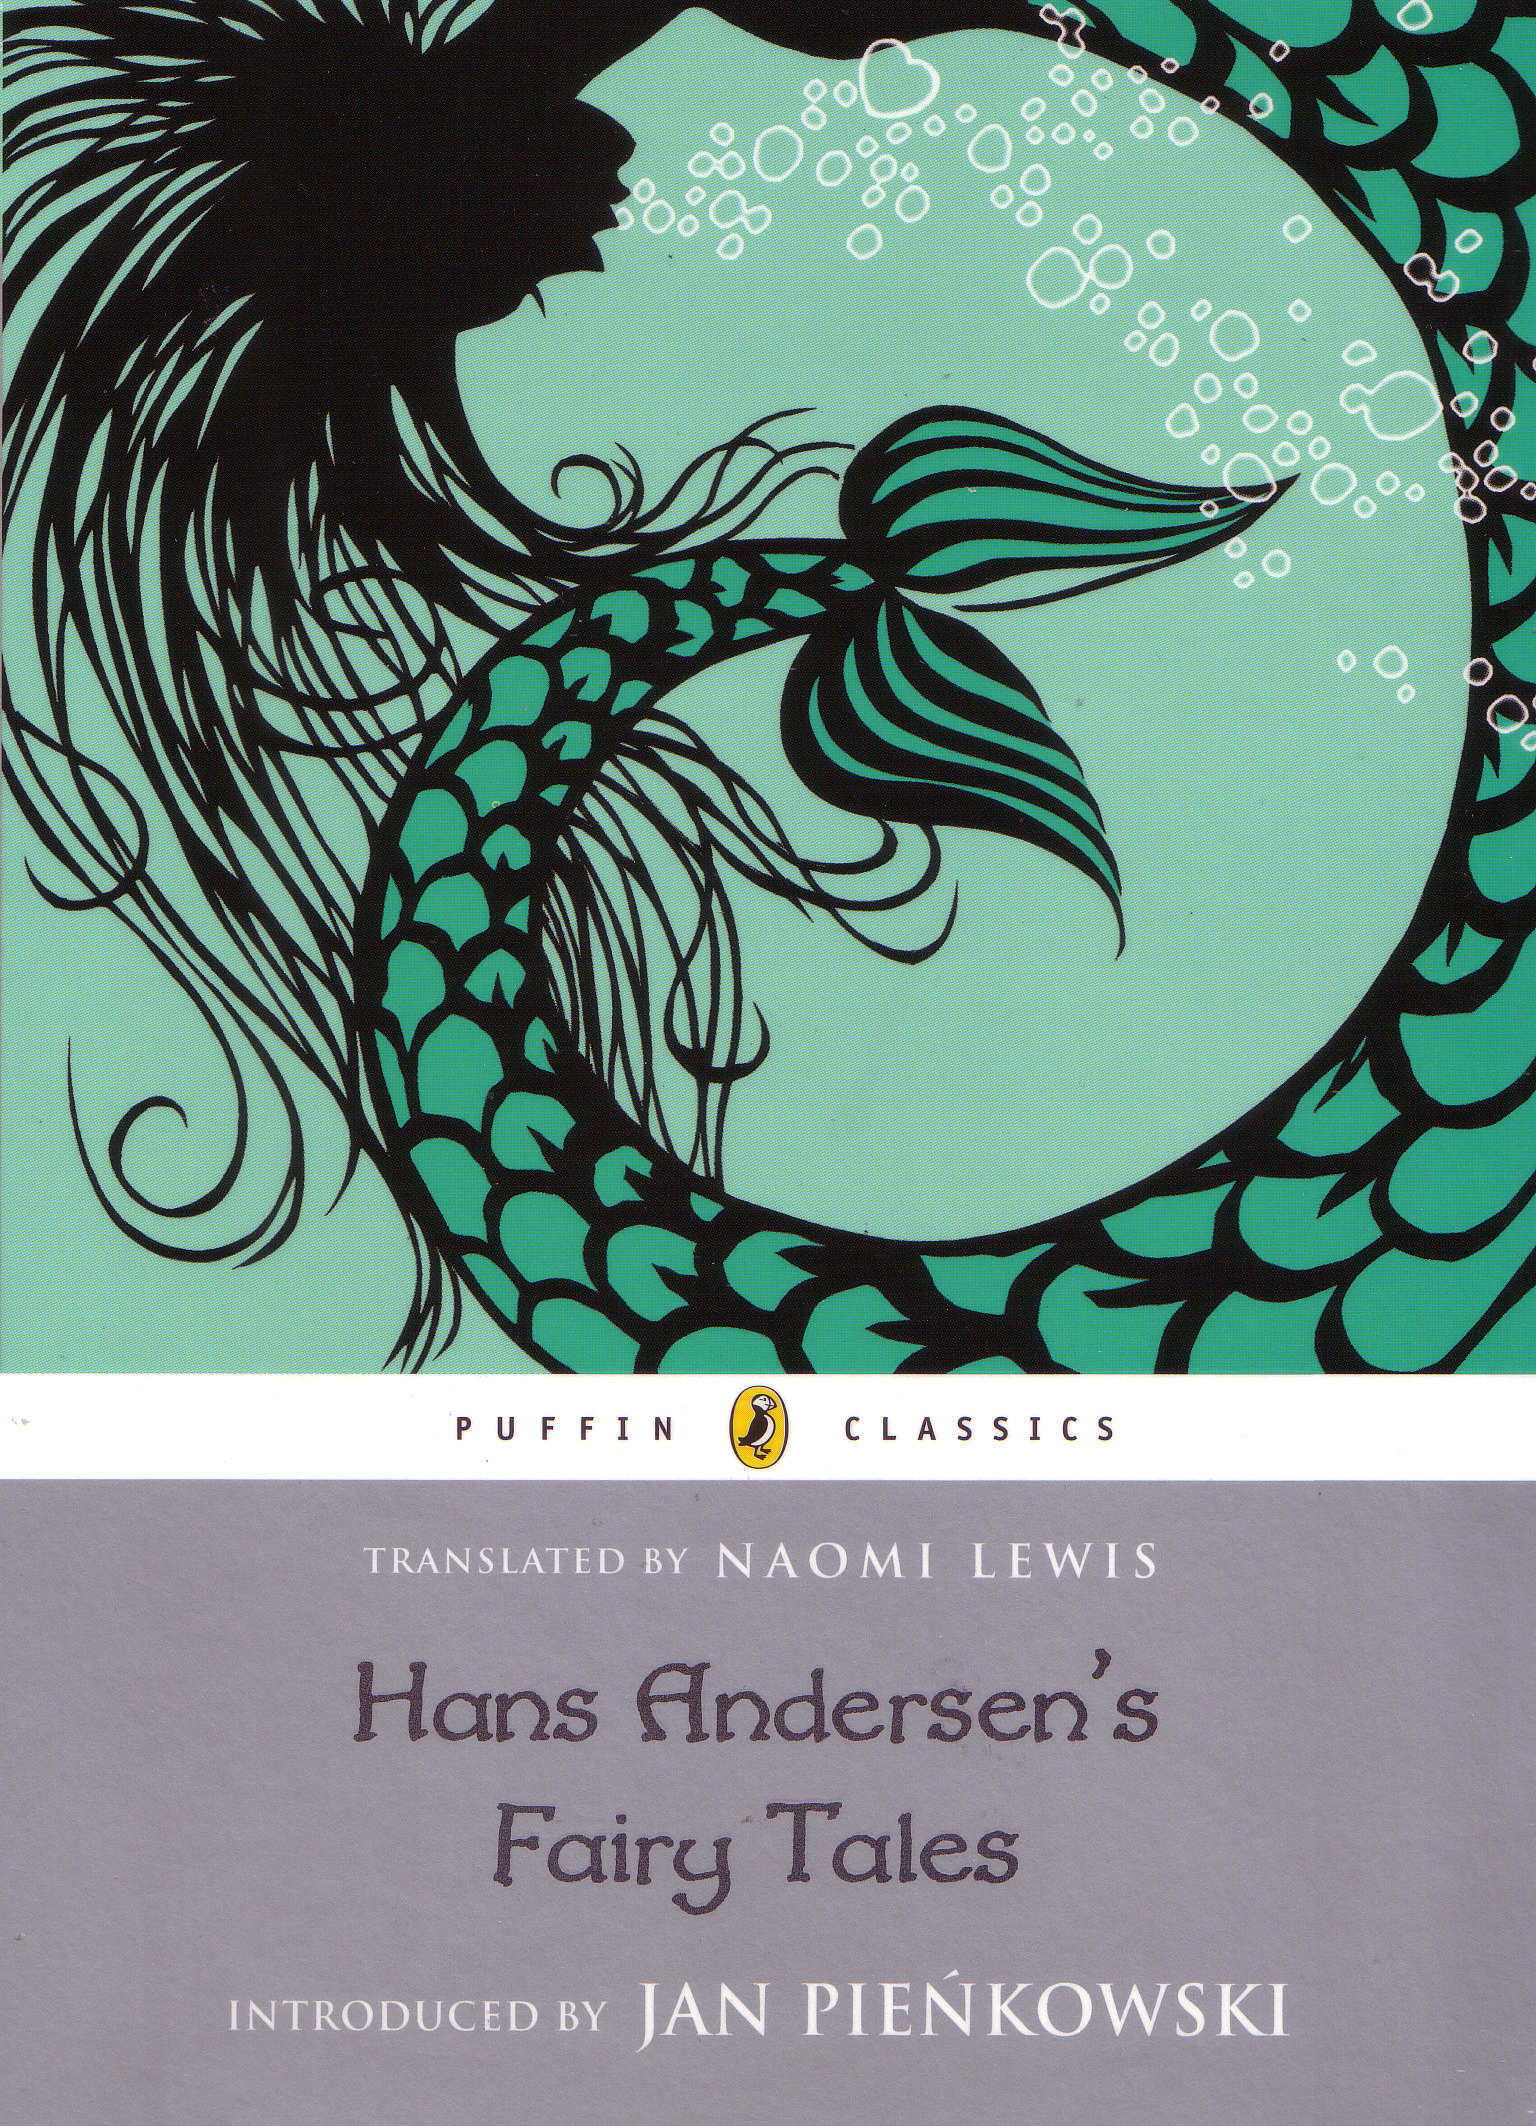 a review of hans christian andersens fairy tales An andersen medalist whose distinguished work includes picture-book editions of individual andersen tales (thumbeline, 1985) selects eight stories for a collection intended to ``echo that grand tradition where the literature itself takes center stage, and the master illustrator presents only a picture or two to light up the reader's imagination'.